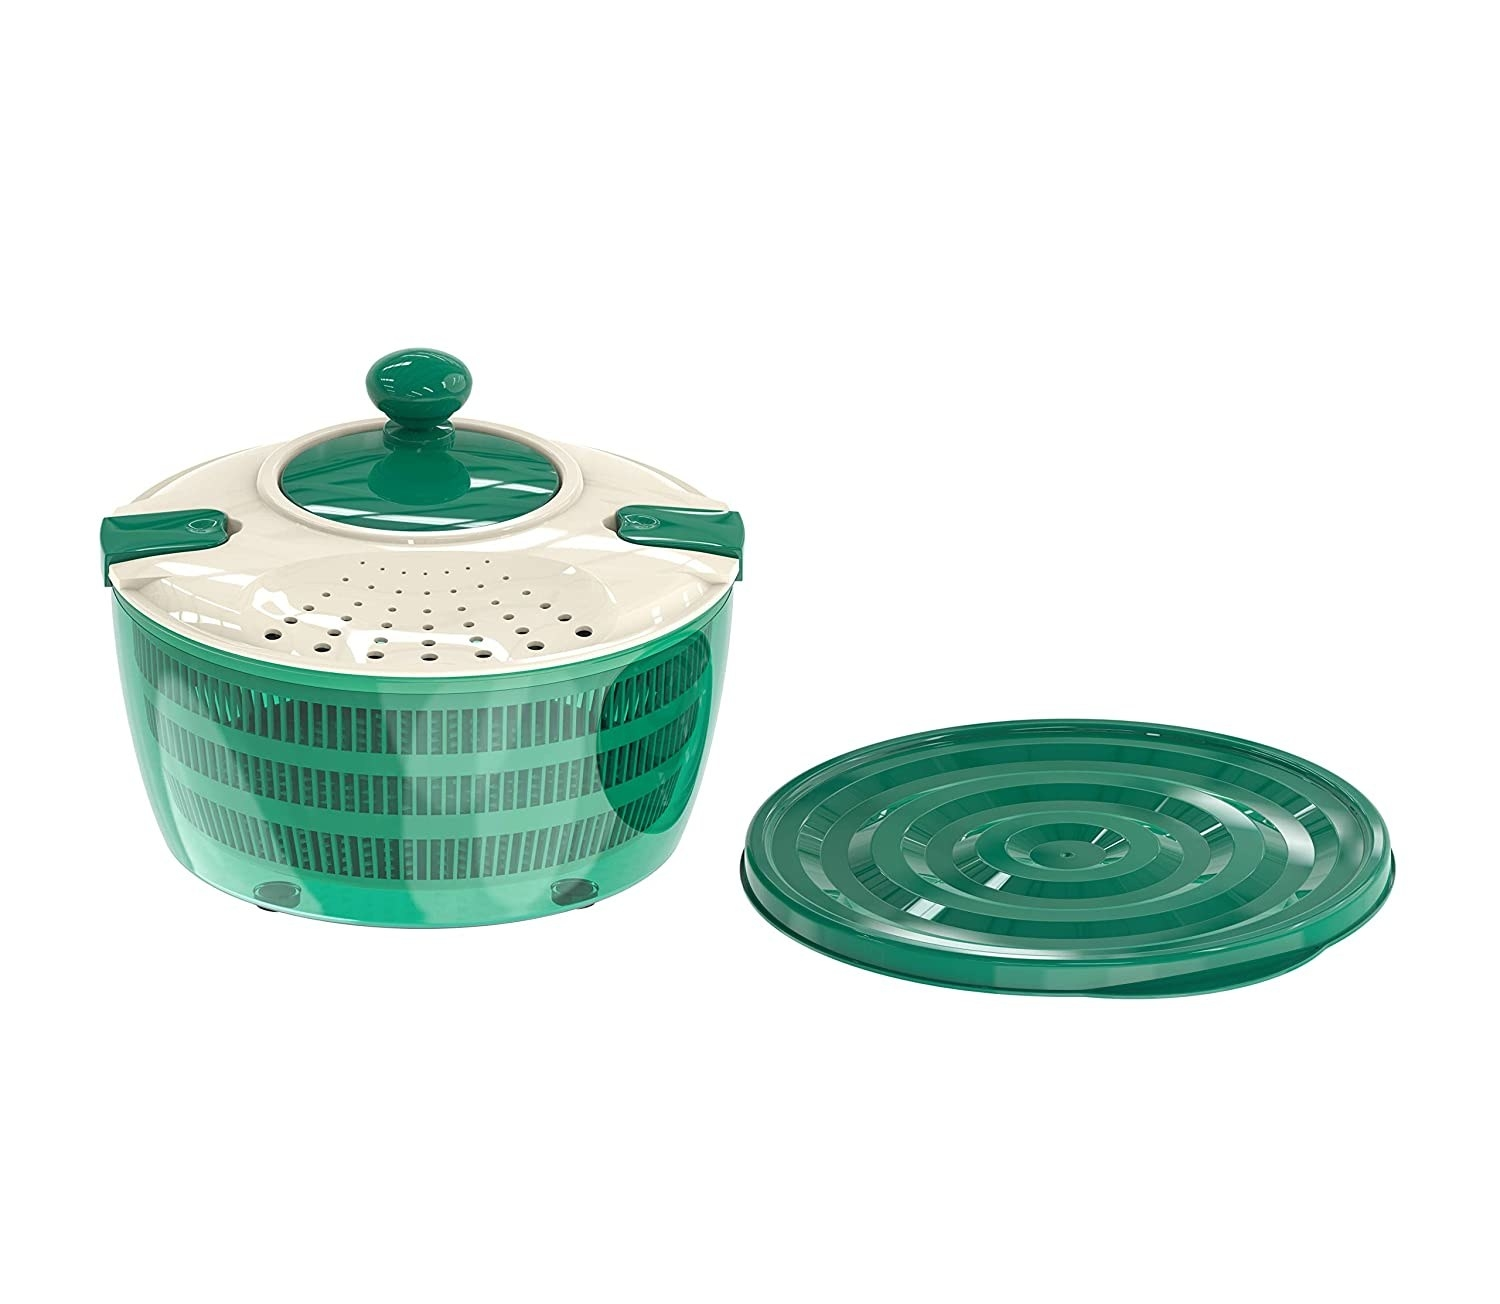 A green and cream salad spinner